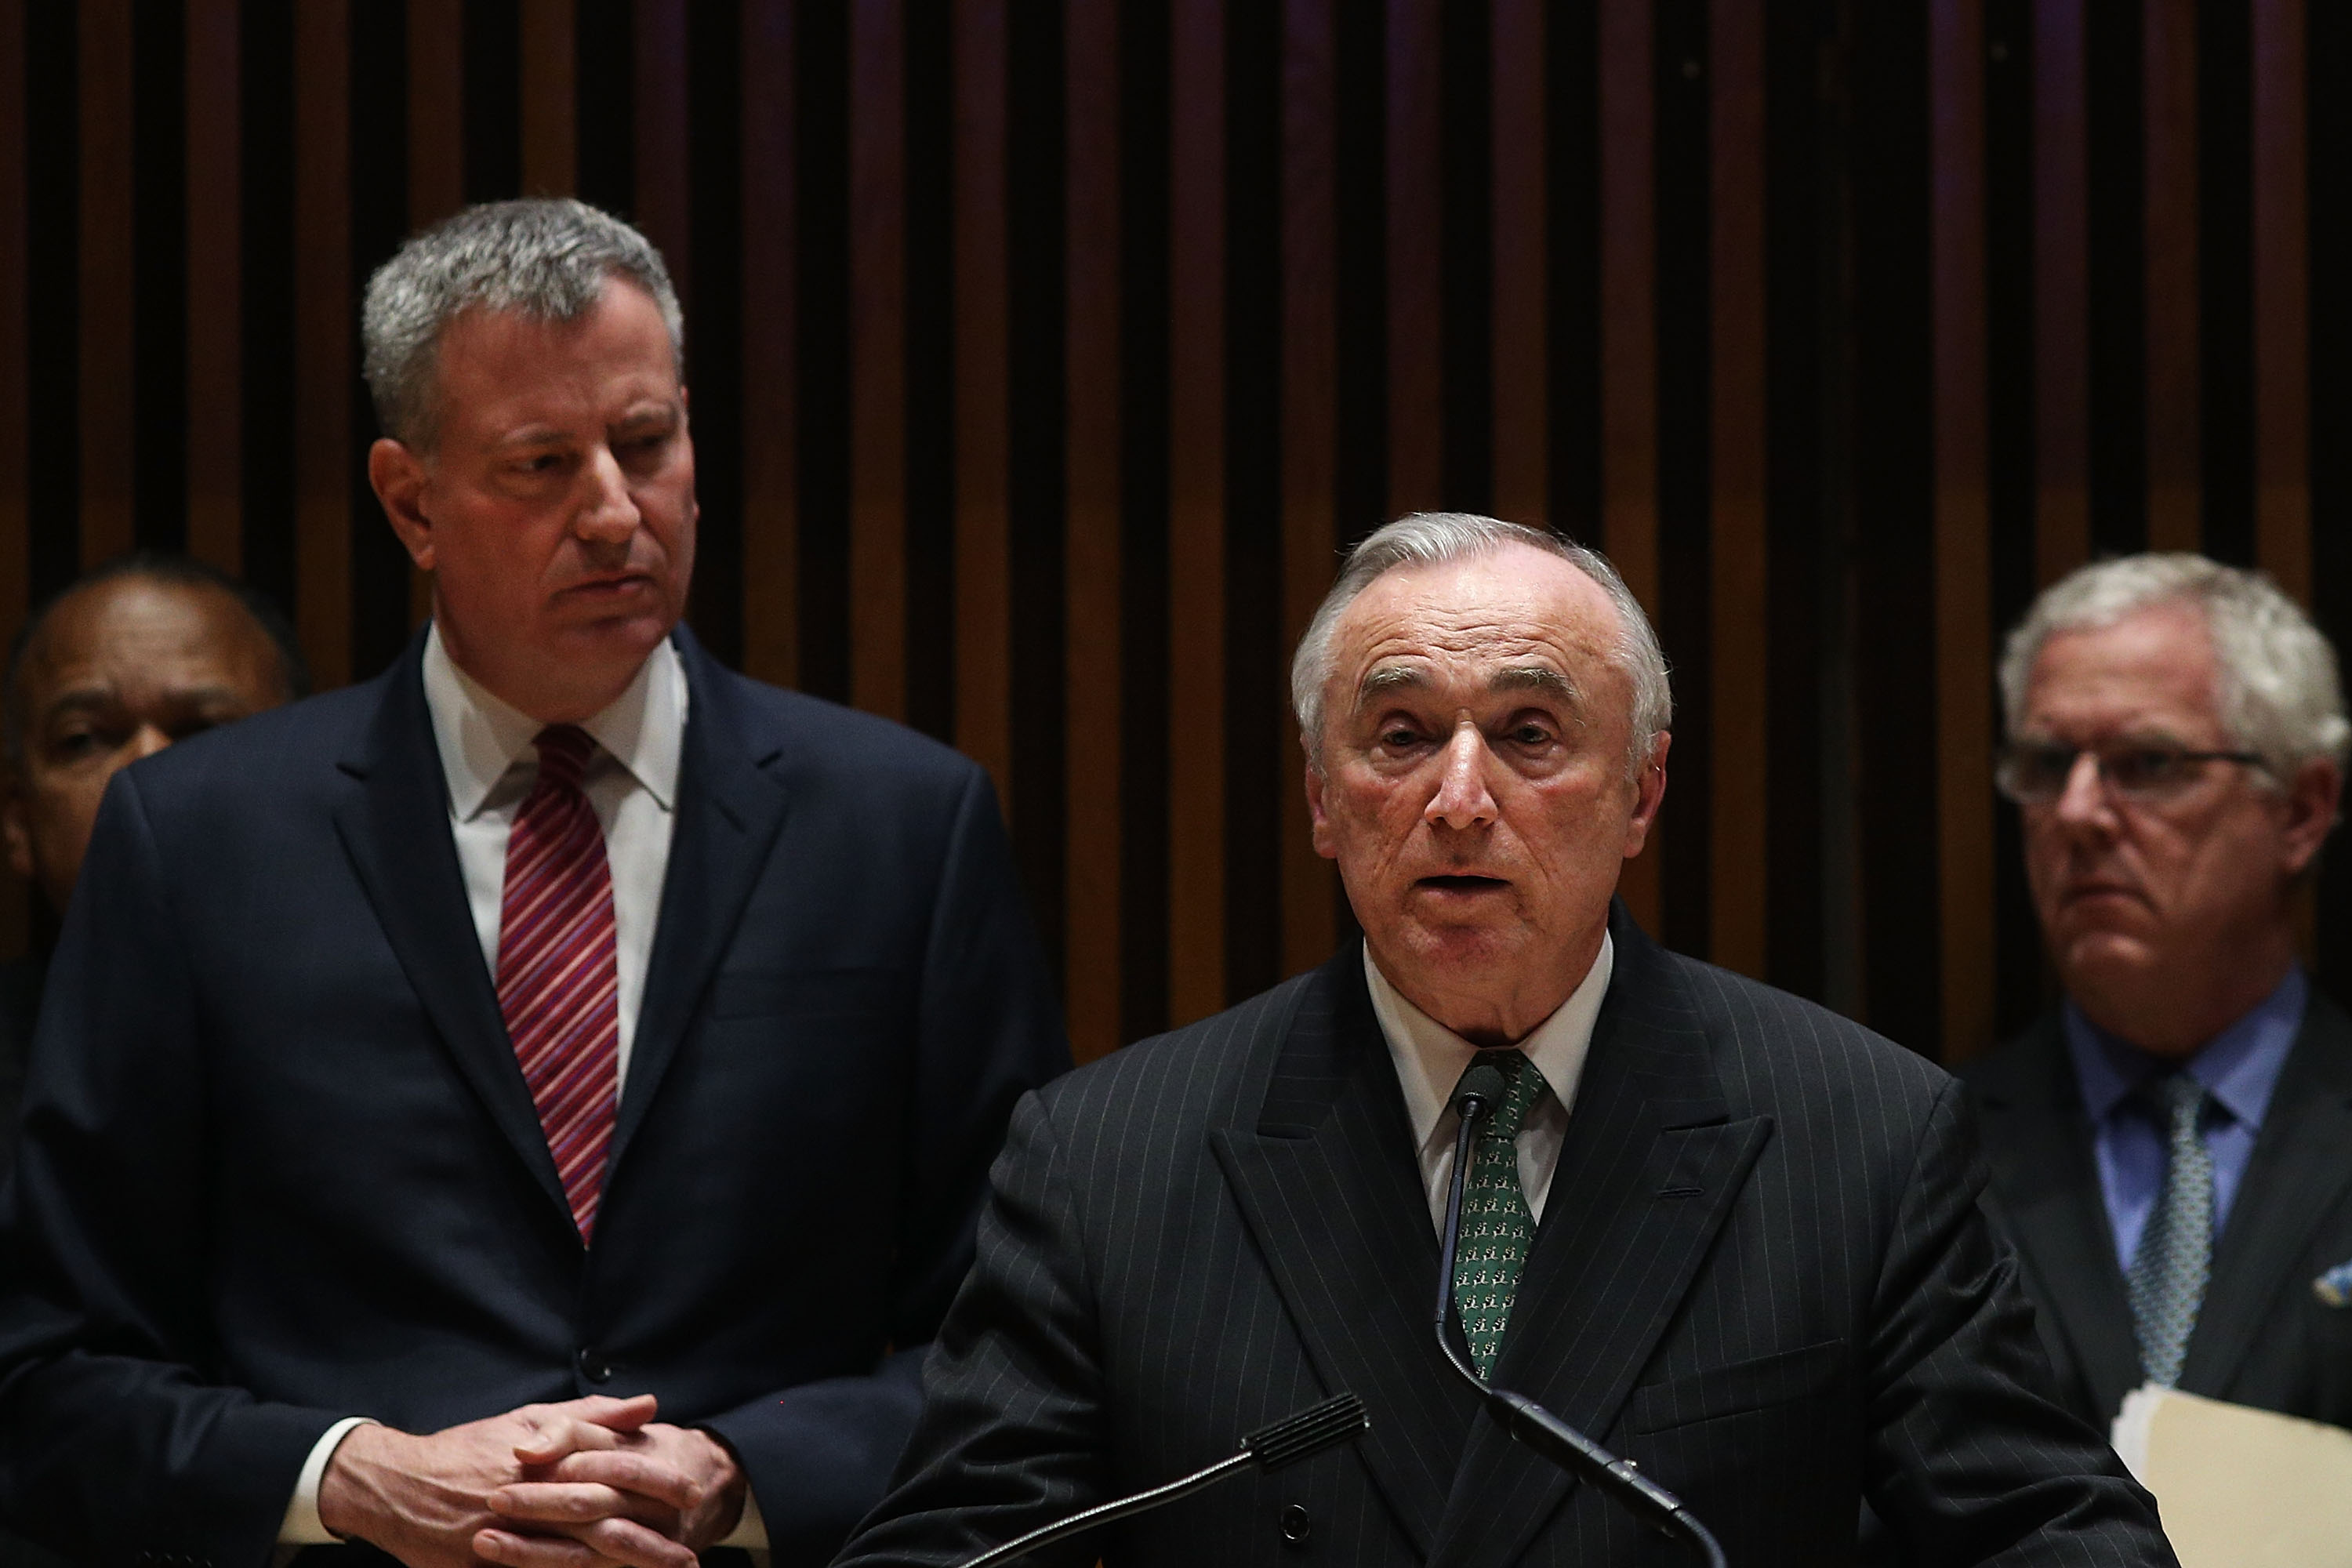 Mayor Bill de Blasio with Police Commissioner Bill Bratton. (Photo by Spencer Platt/Getty Images)